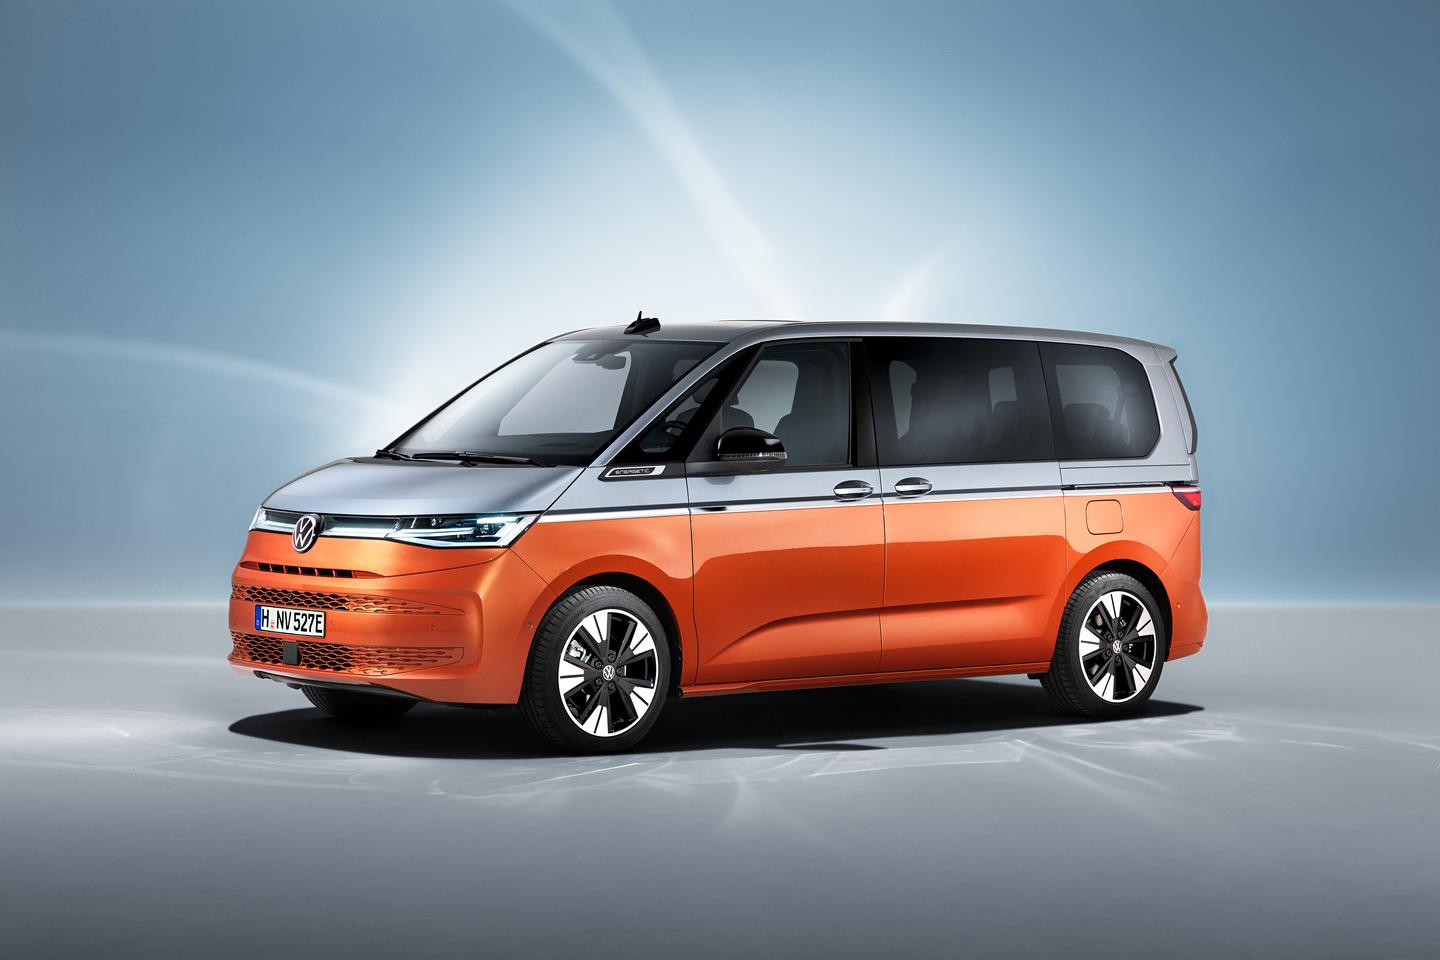 Volkswagen blends past, present and future into the styling of the new T7 Multivan